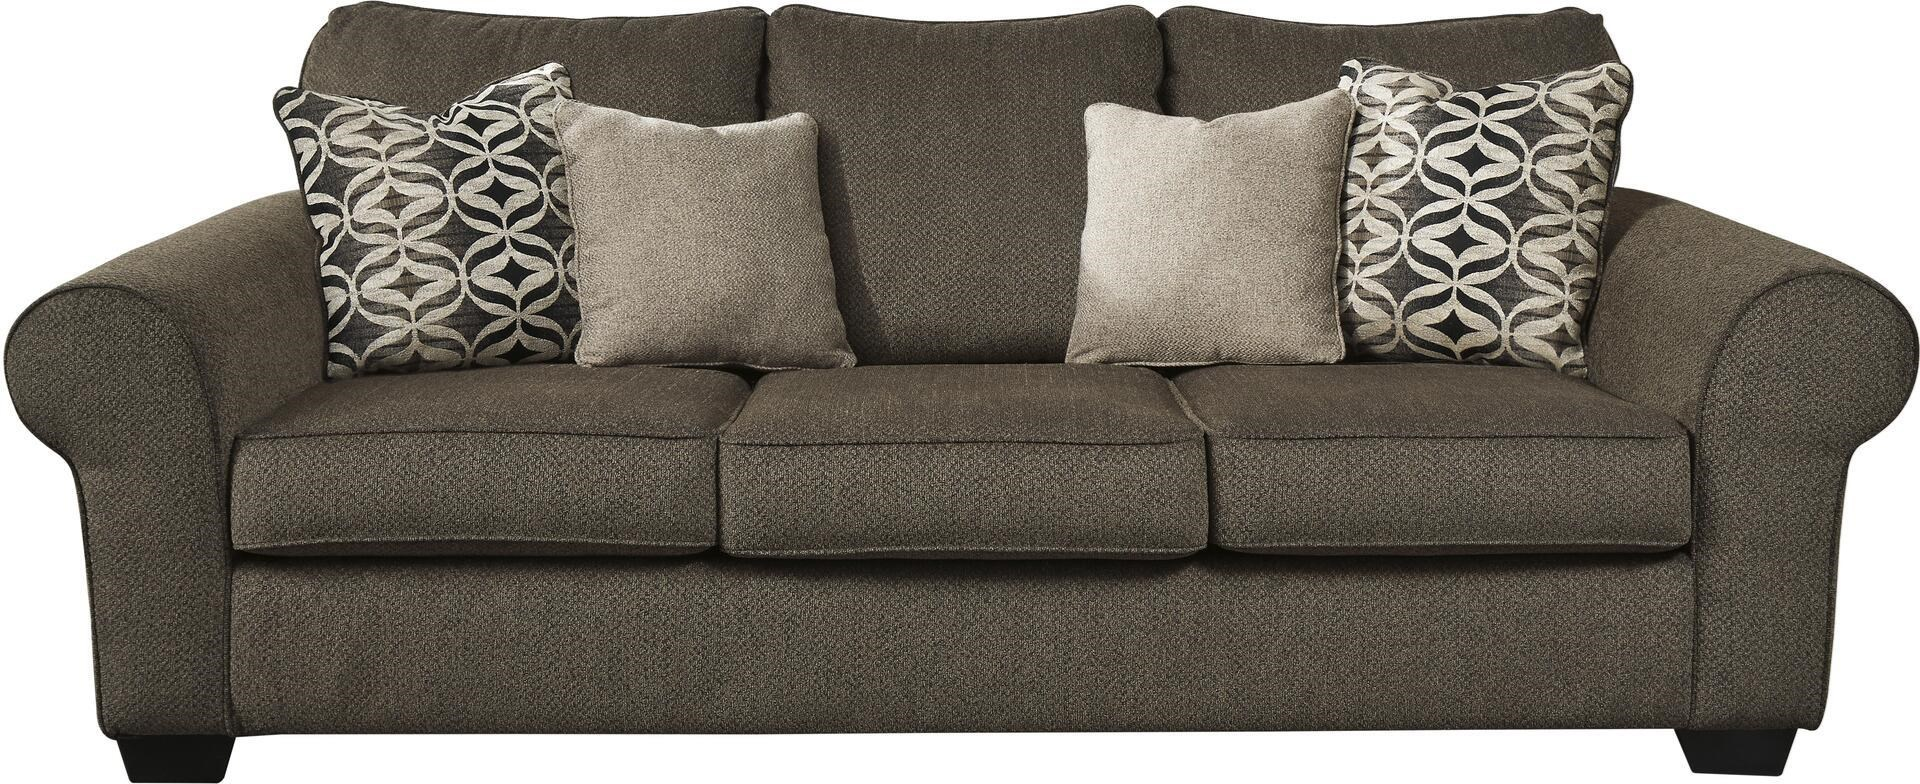 Nesso Nesso Sofa with Accent Pillows by Ashley at Morris Home